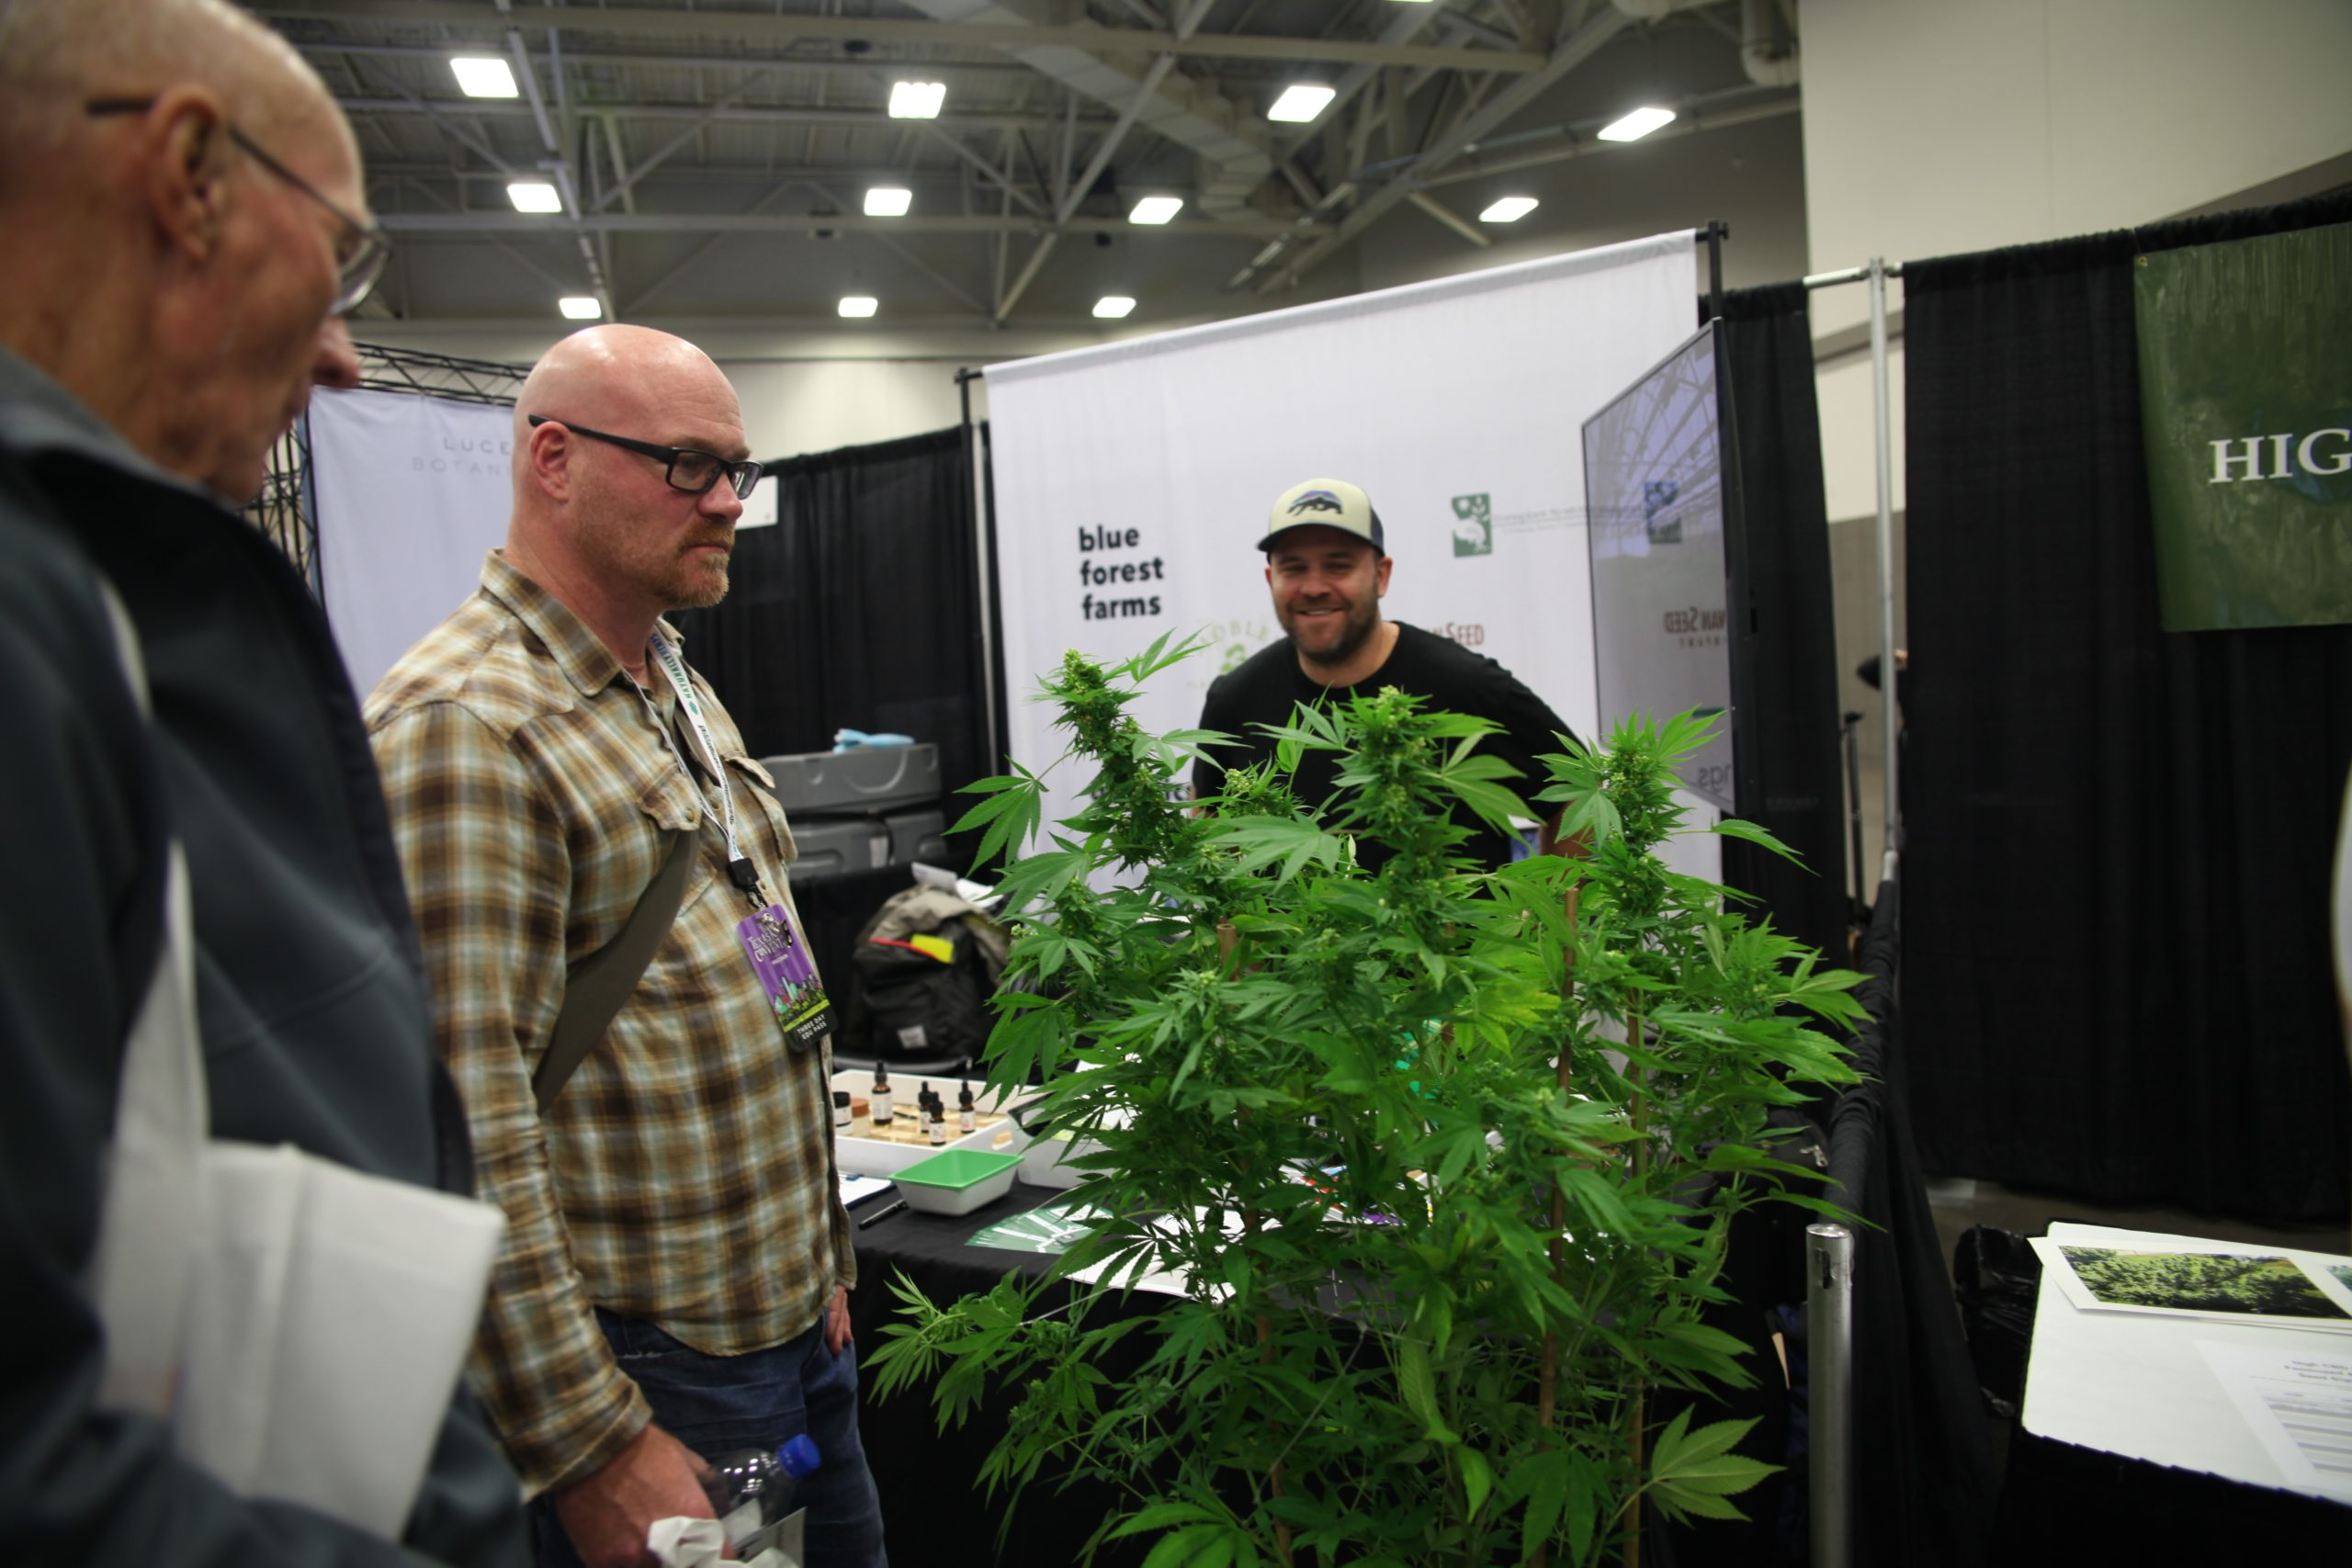 The Hemp Convention in Dallas attracted 15,000 attendees, and even more questions.